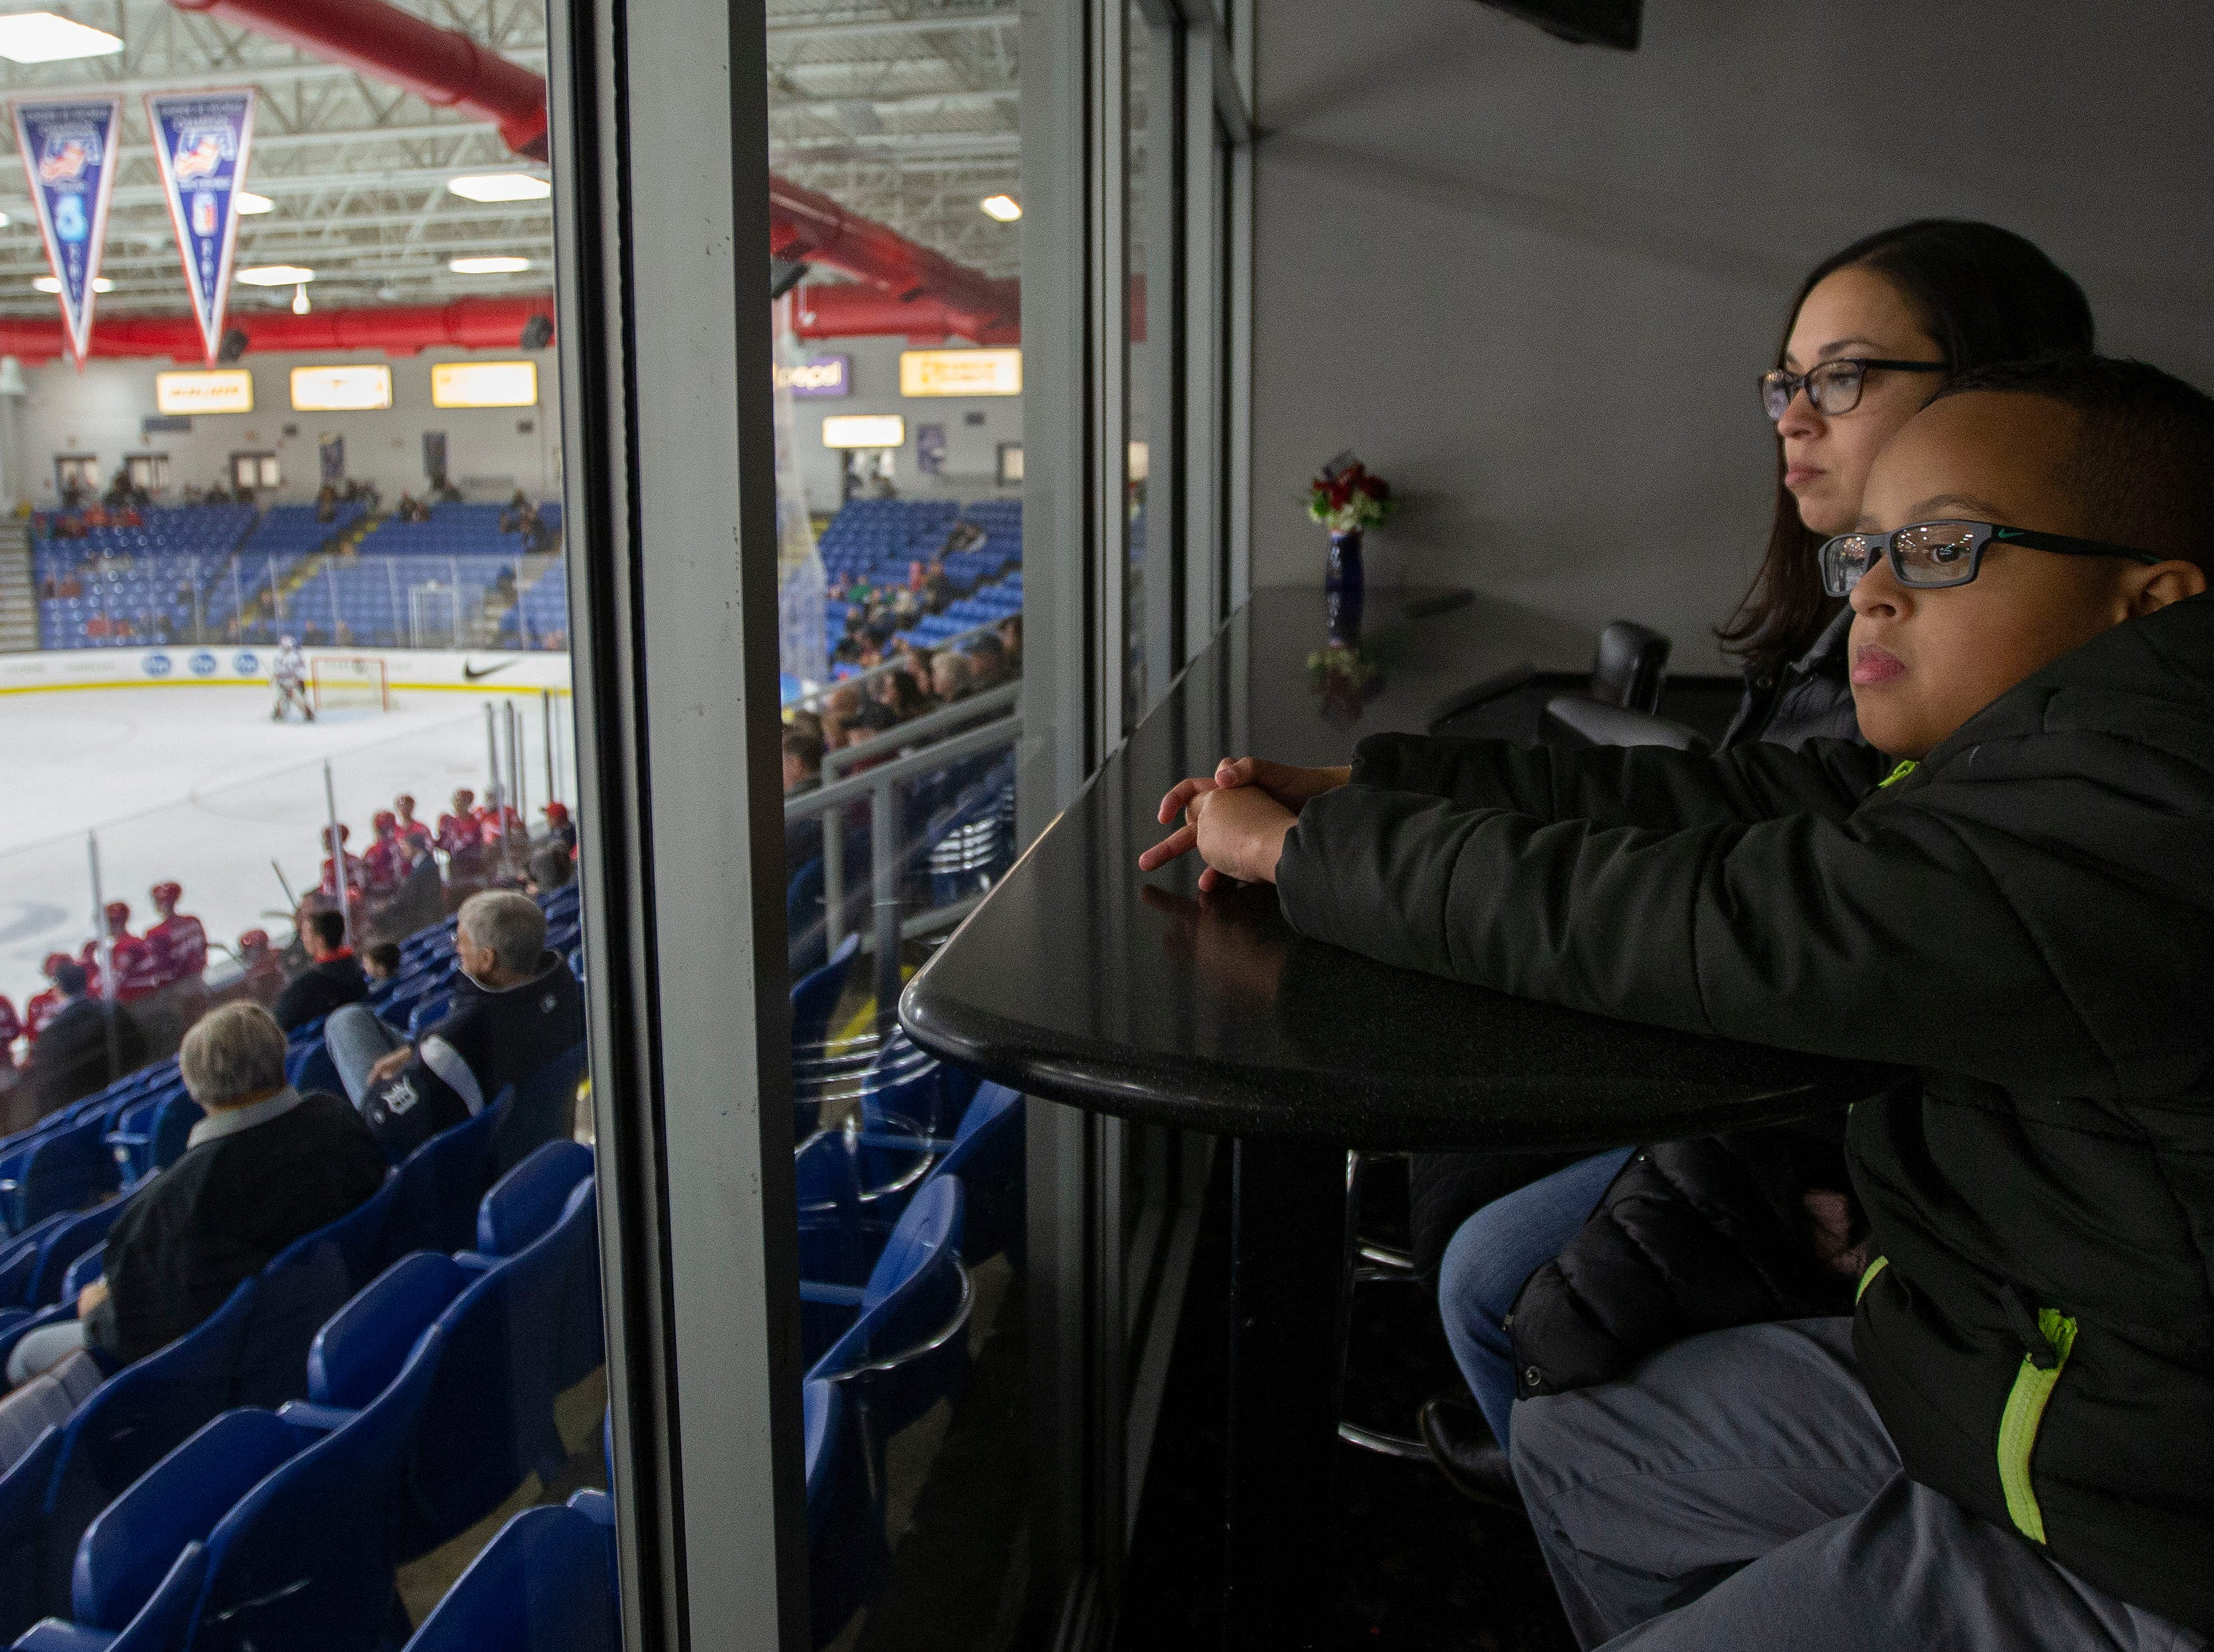 Sights and sounds of hockey music to ears of the autistic